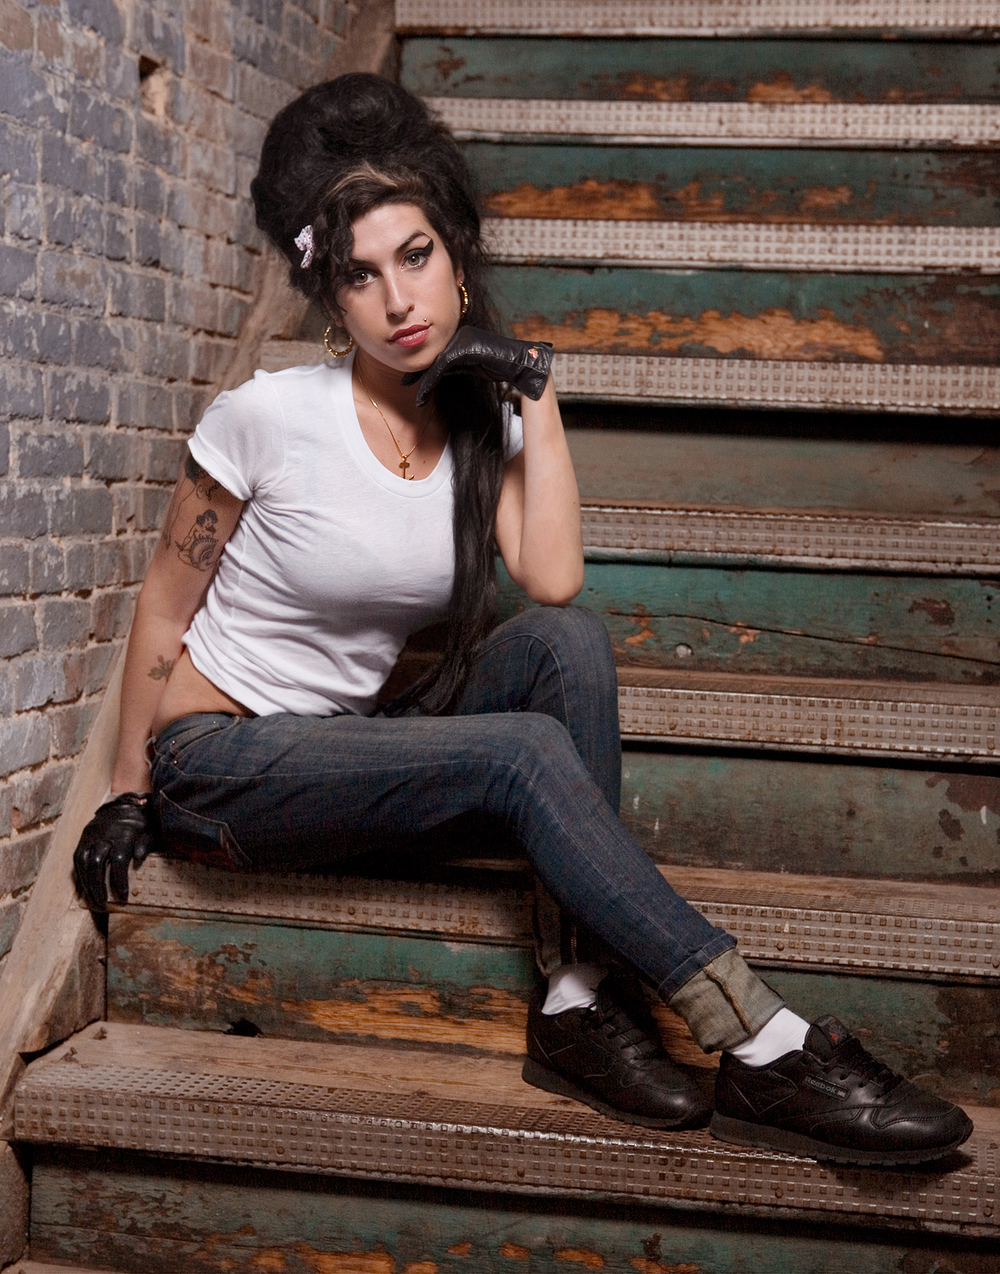 Amy Winehouse, Musician. For The Word Magazine.